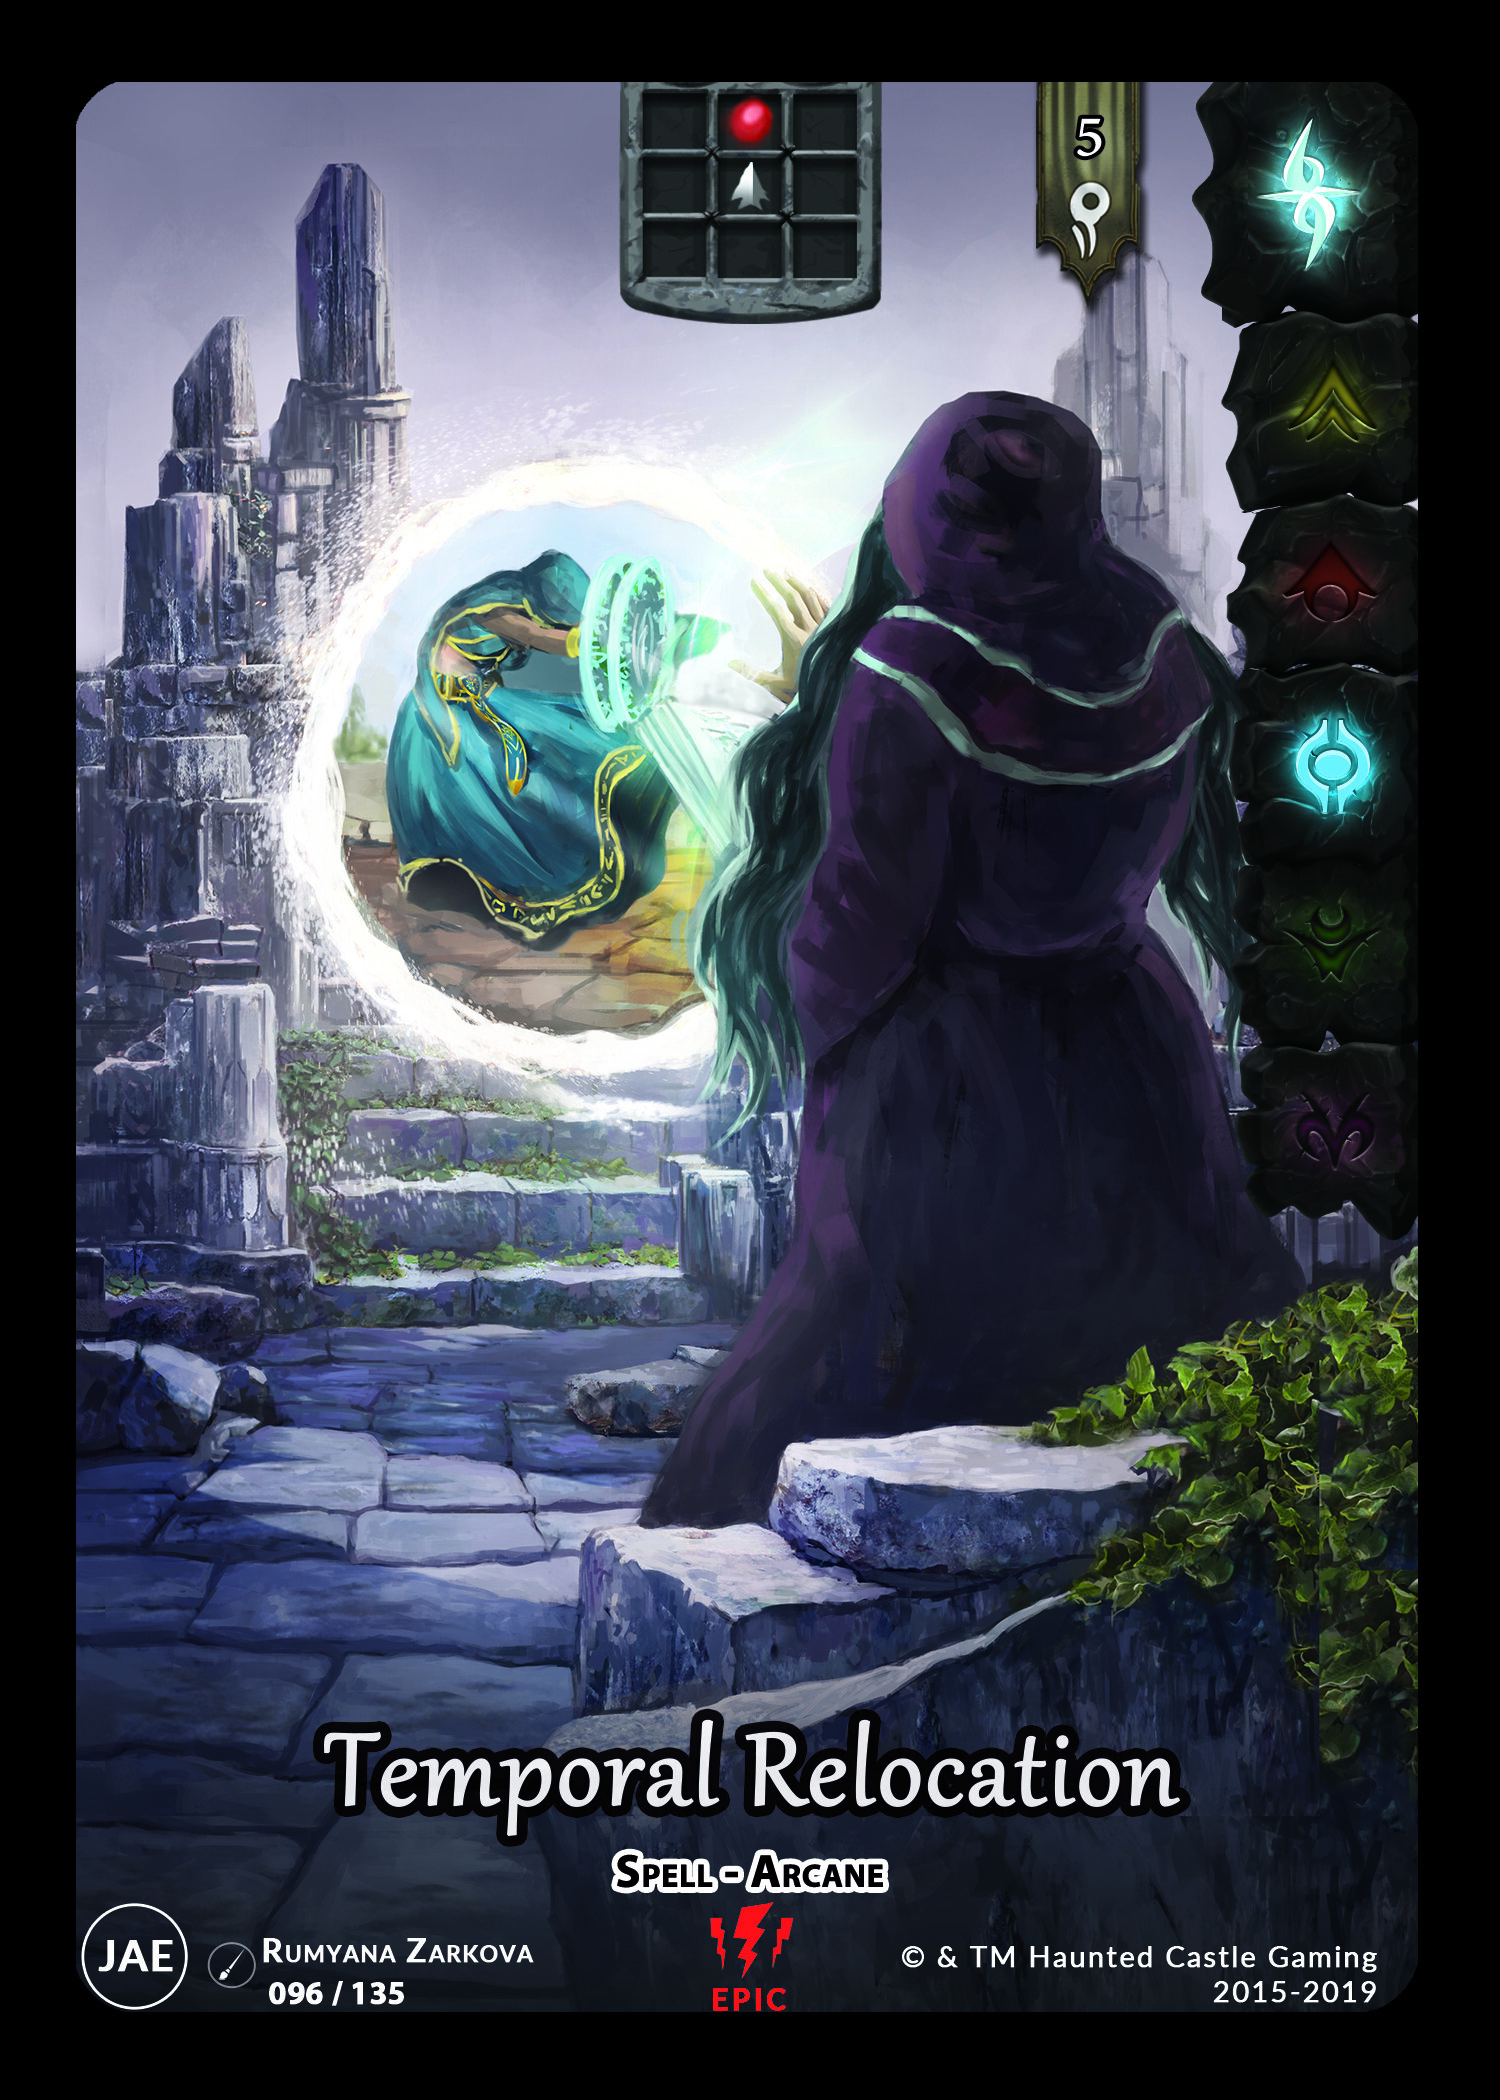 096-Temporal Relocation-Epic.jpg